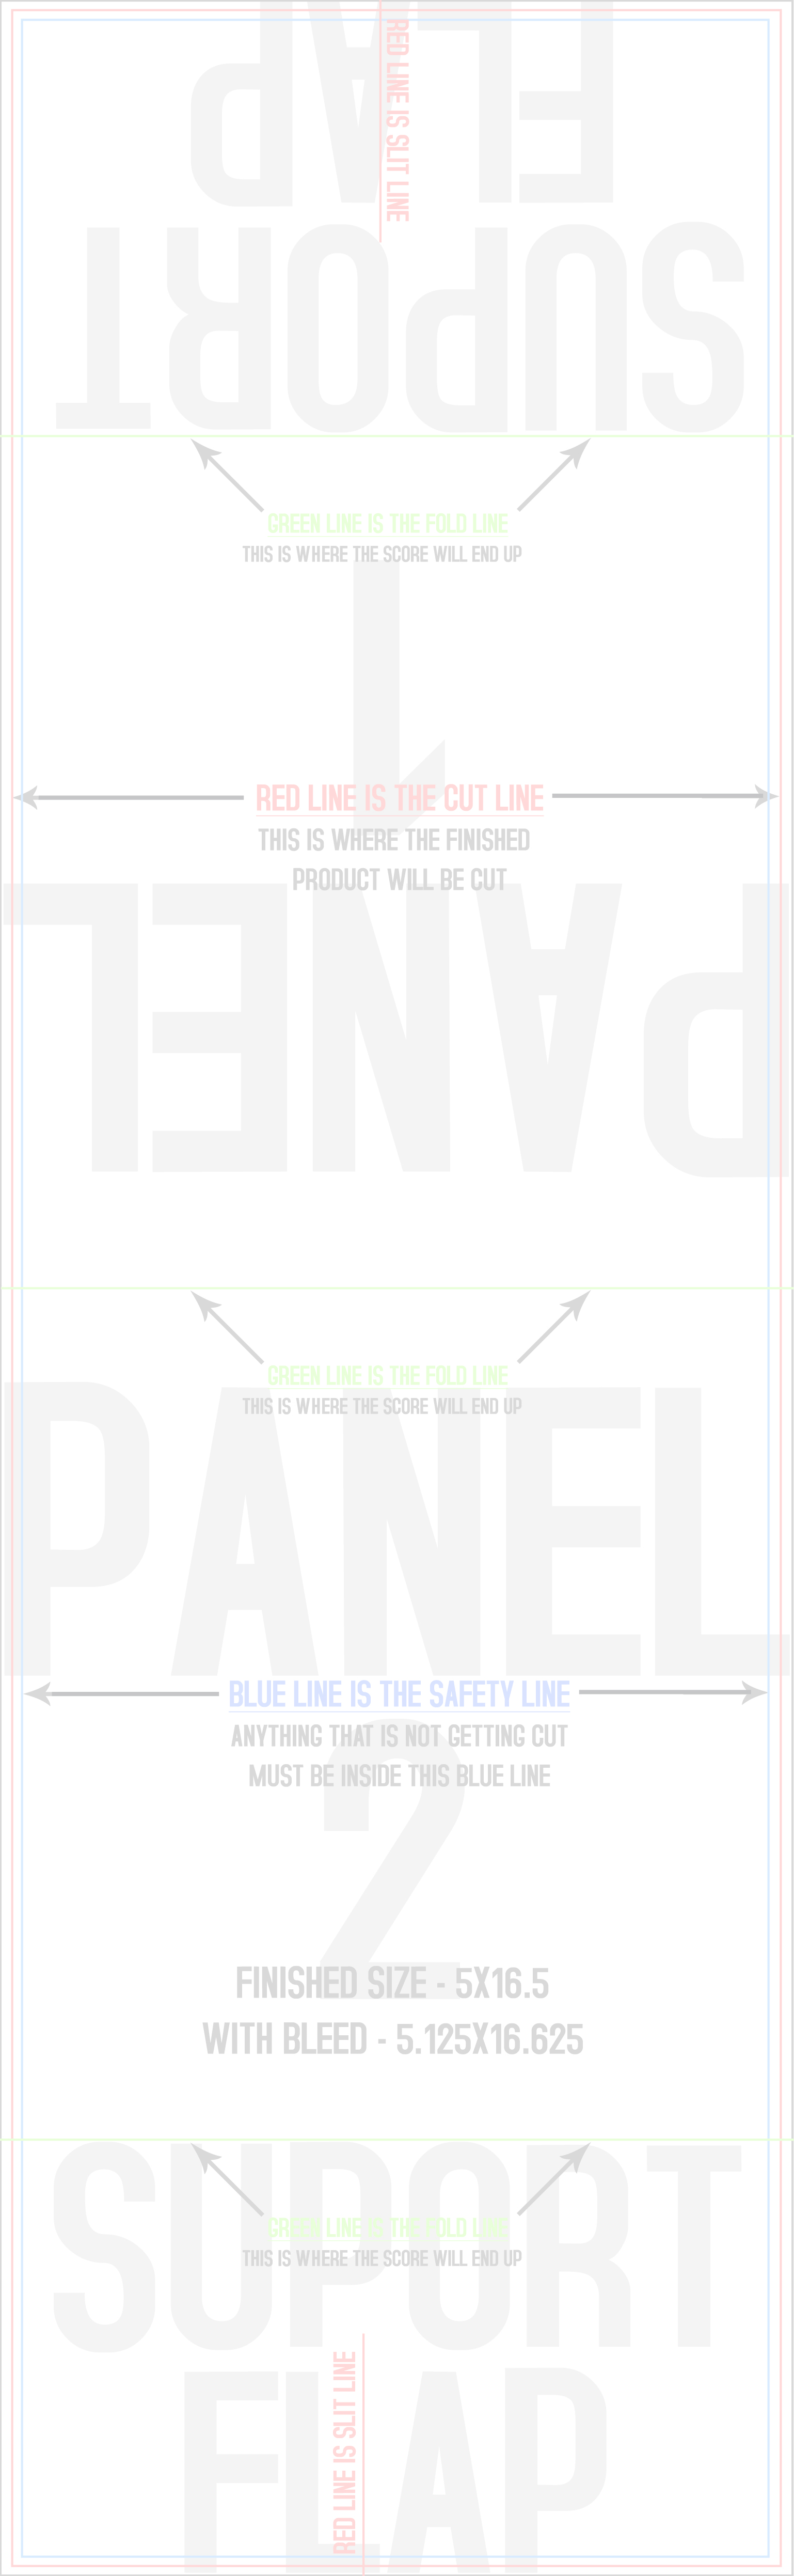 4 over certified tent card templates for 4over templates